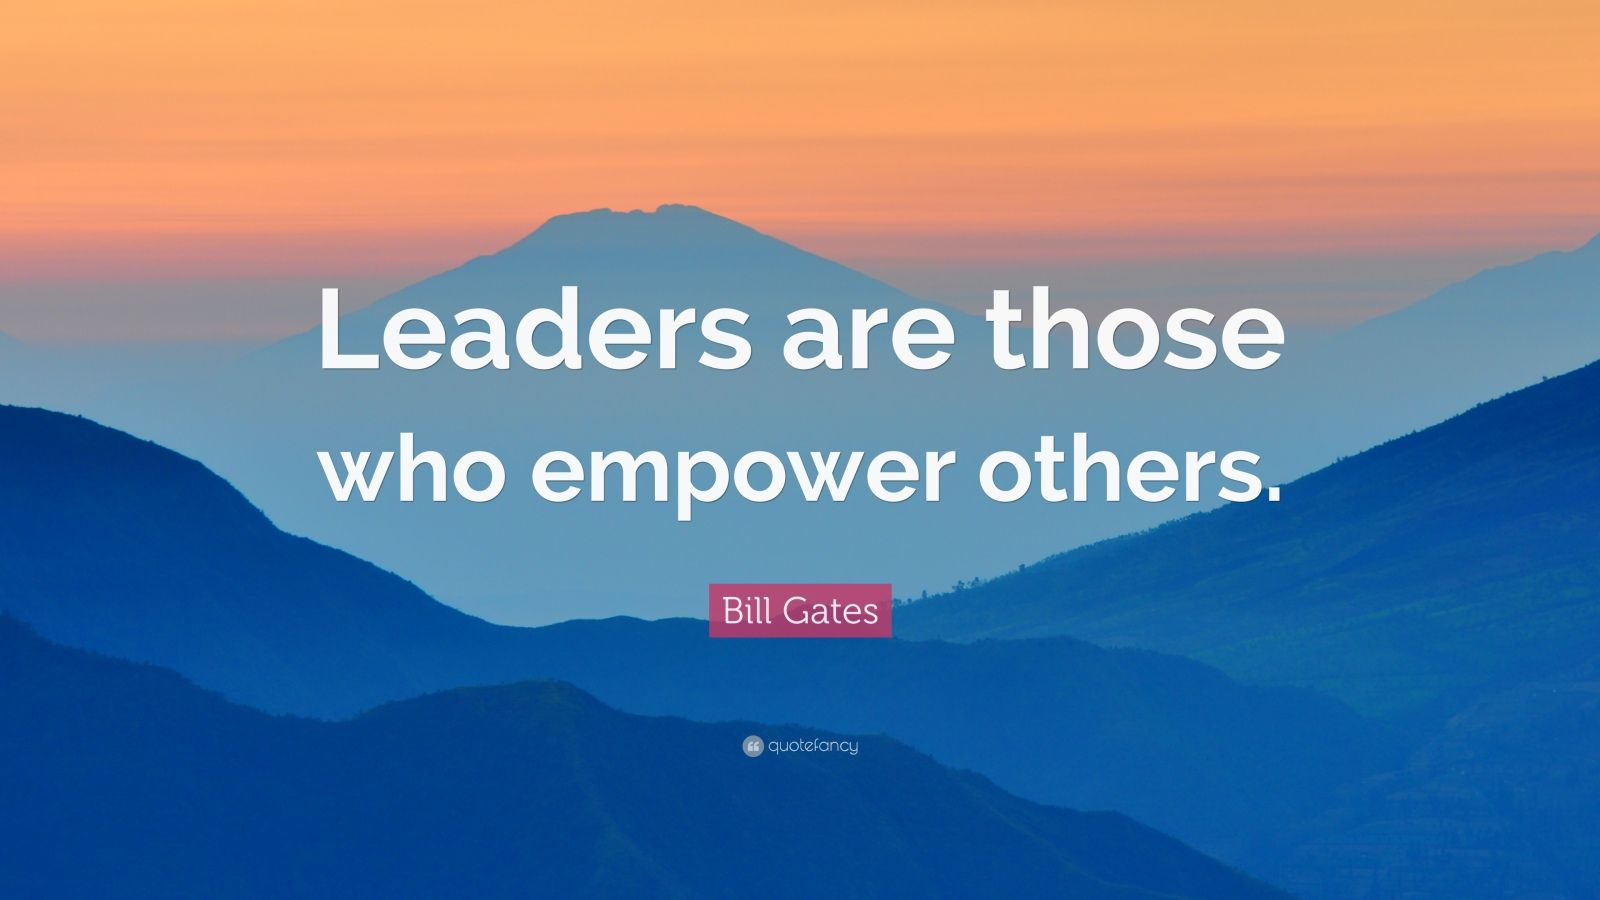 Gandhi Wallpapers With Quotes Bill Gates Quote Leaders Are Those Who Empower Others